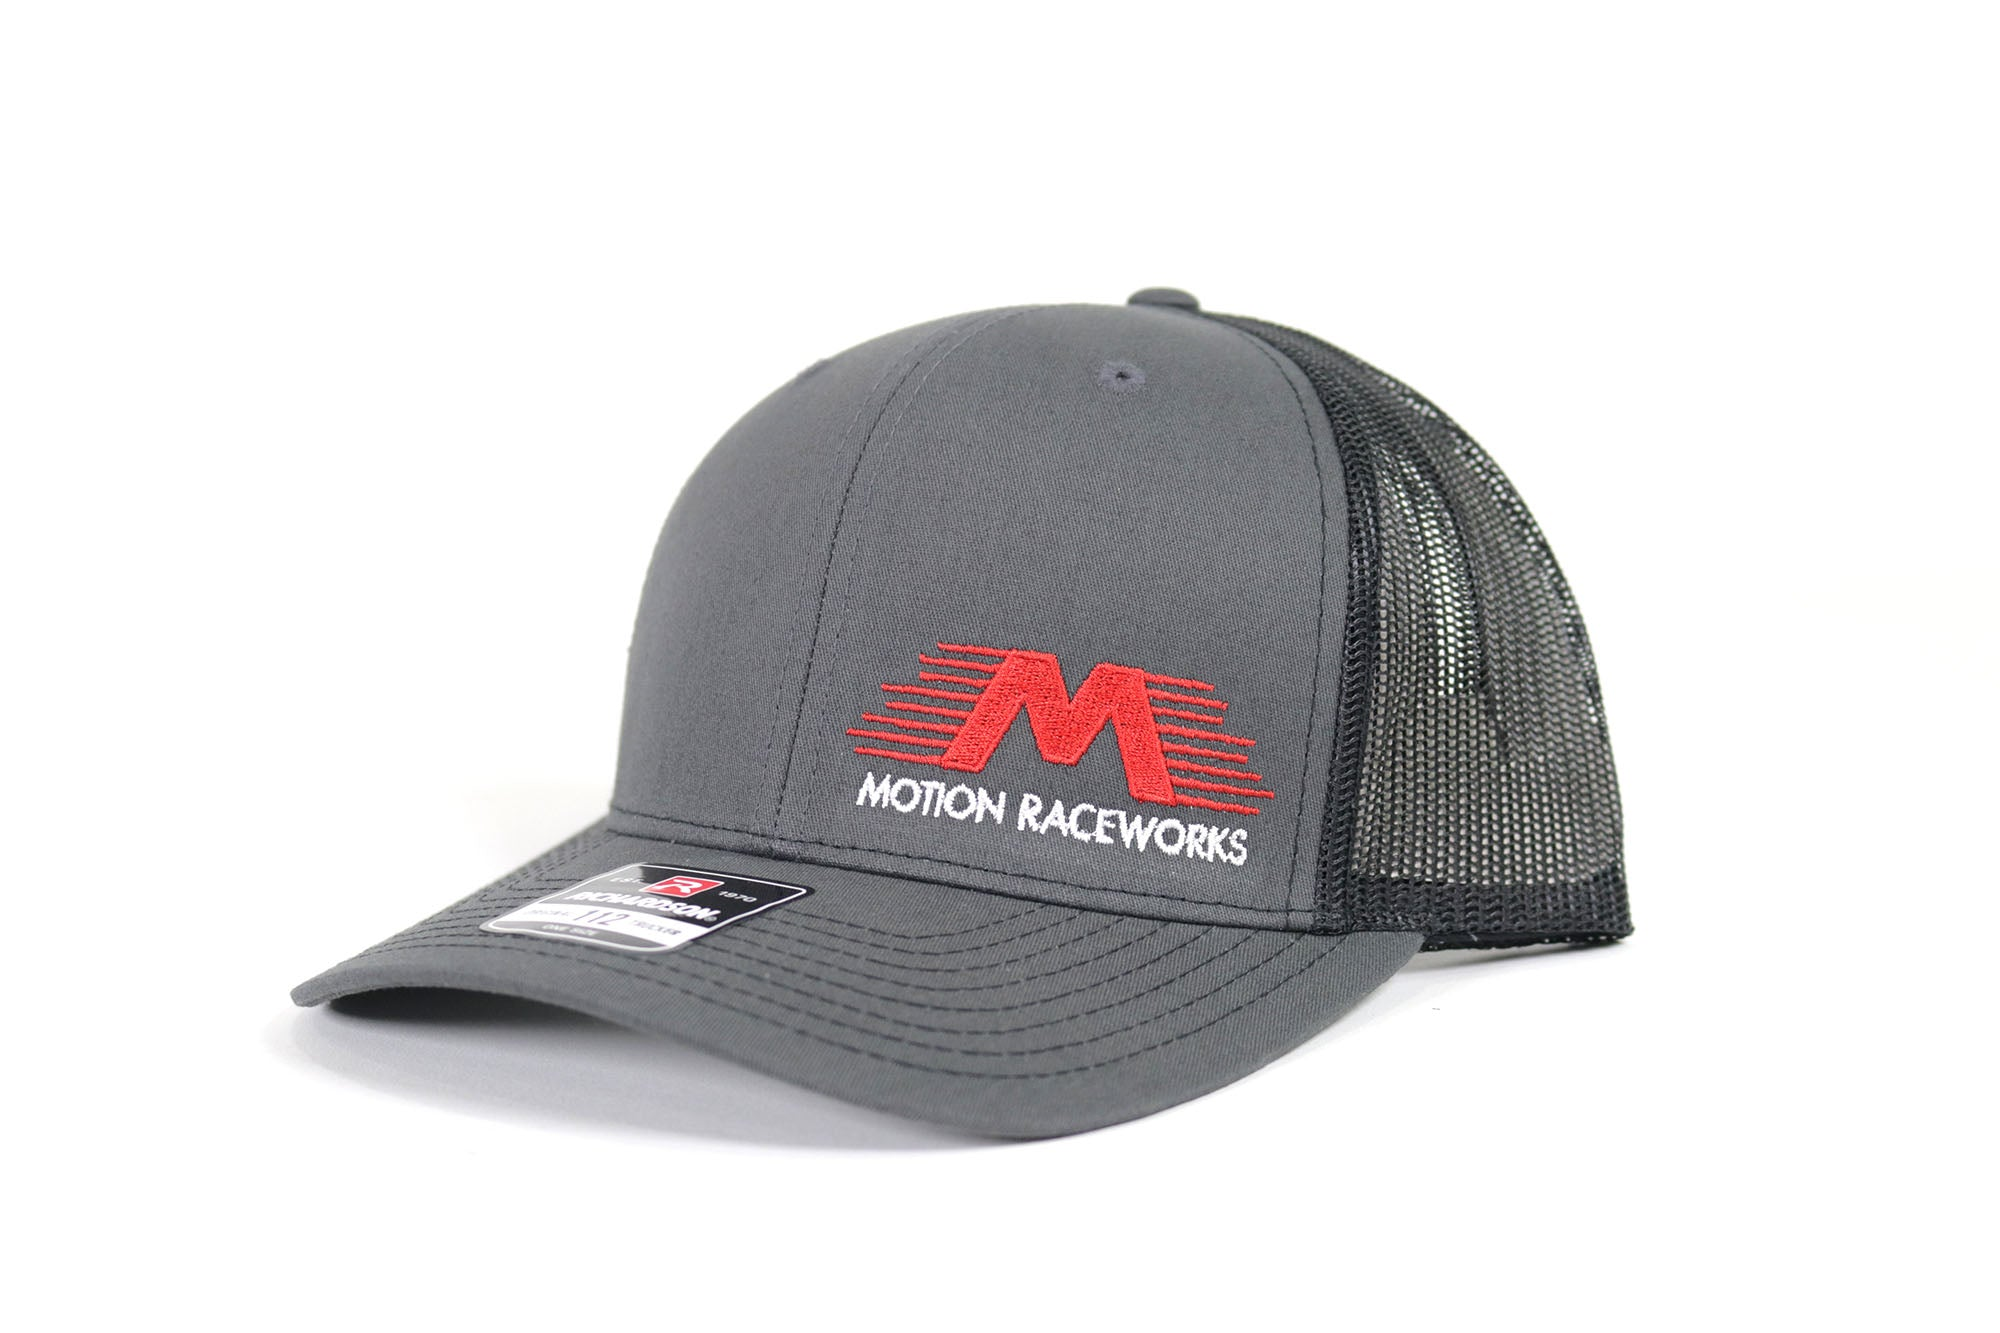 Black/Grey Motion Raceworks Trucker Snapback Hat (Mesh Back)-Motion Raceworks-Motion Raceworks